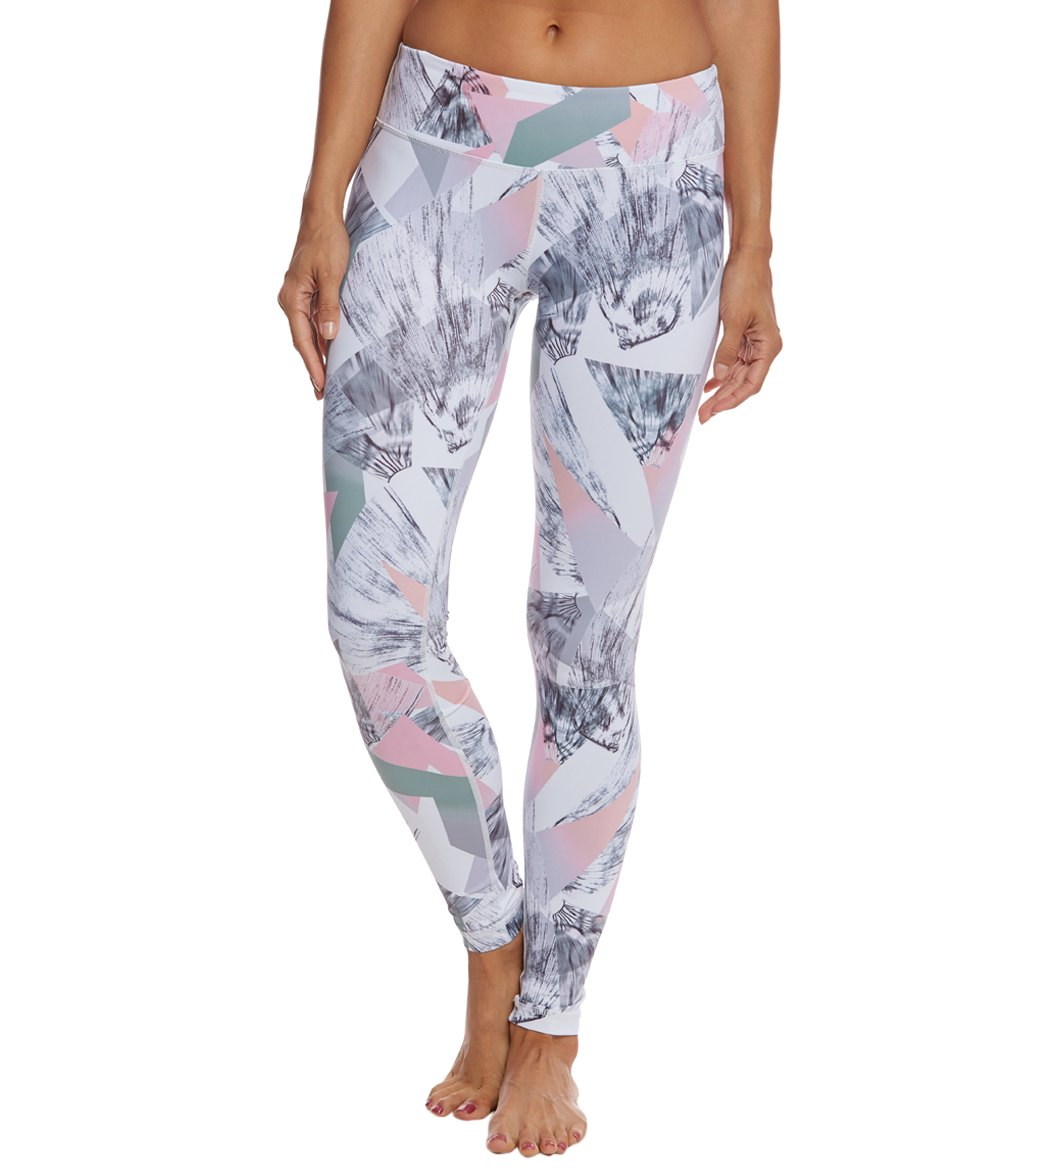 2554a2d831b056 Vimmia Printed Core Yoga Leggings at SwimOutlet.com - Free Shipping